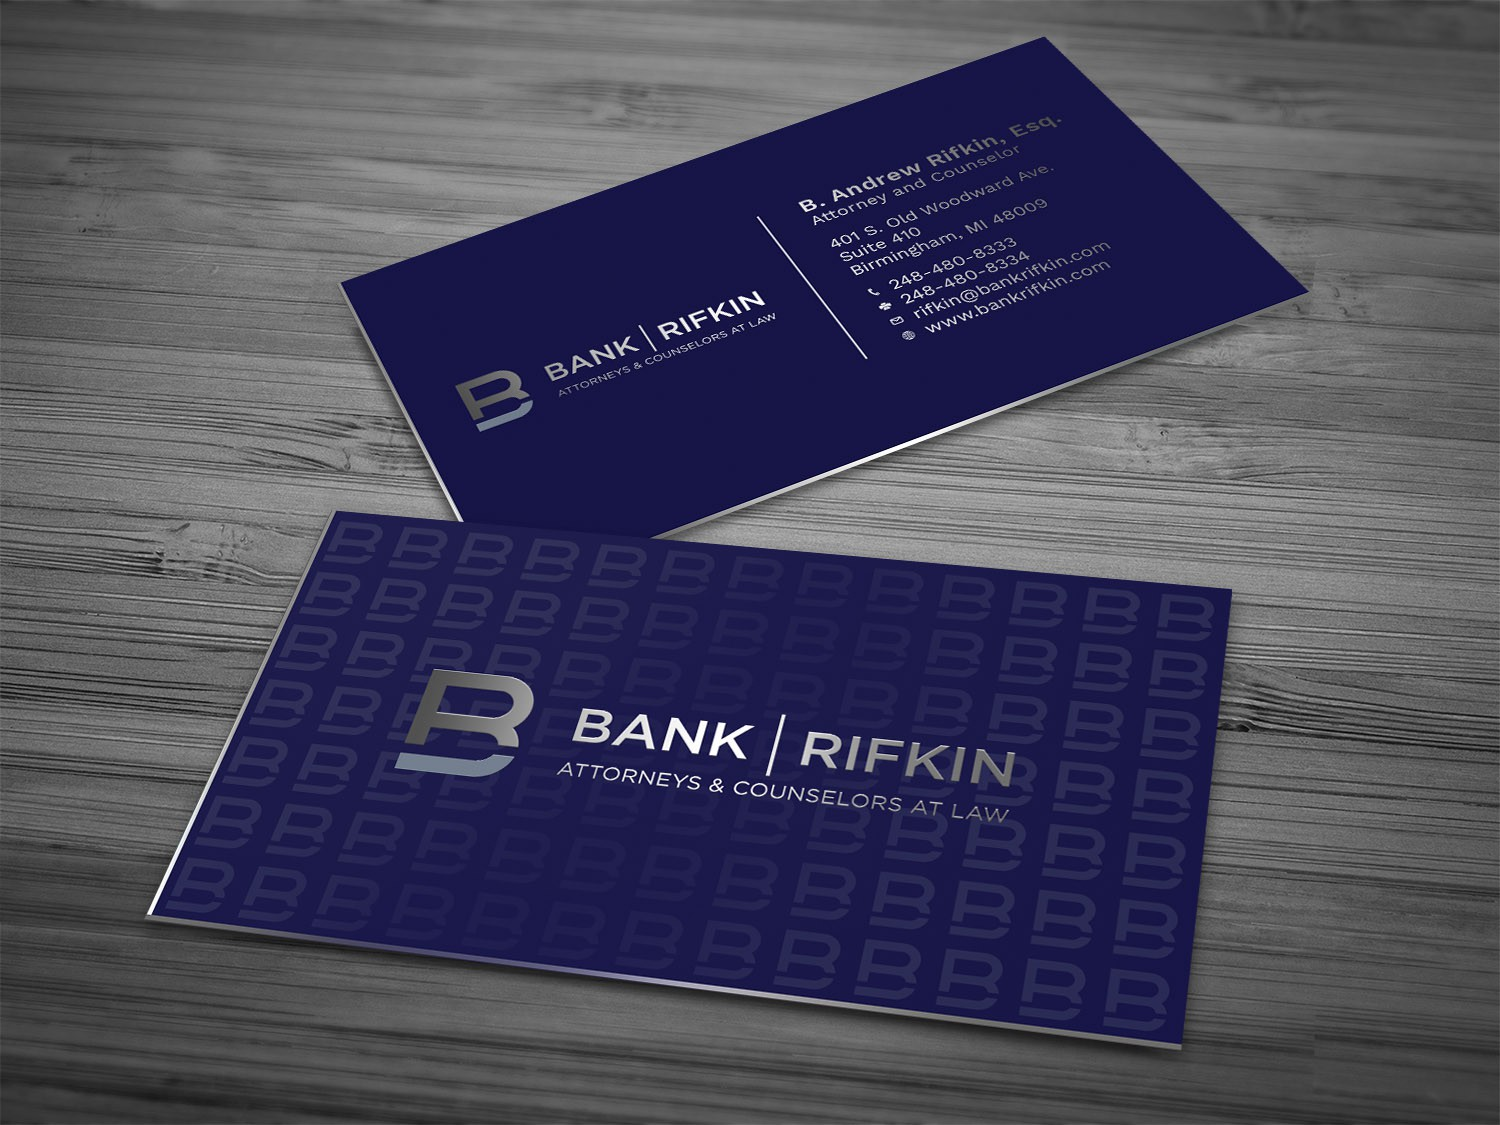 Sophisticated business cards for high-end matrimonial law firm